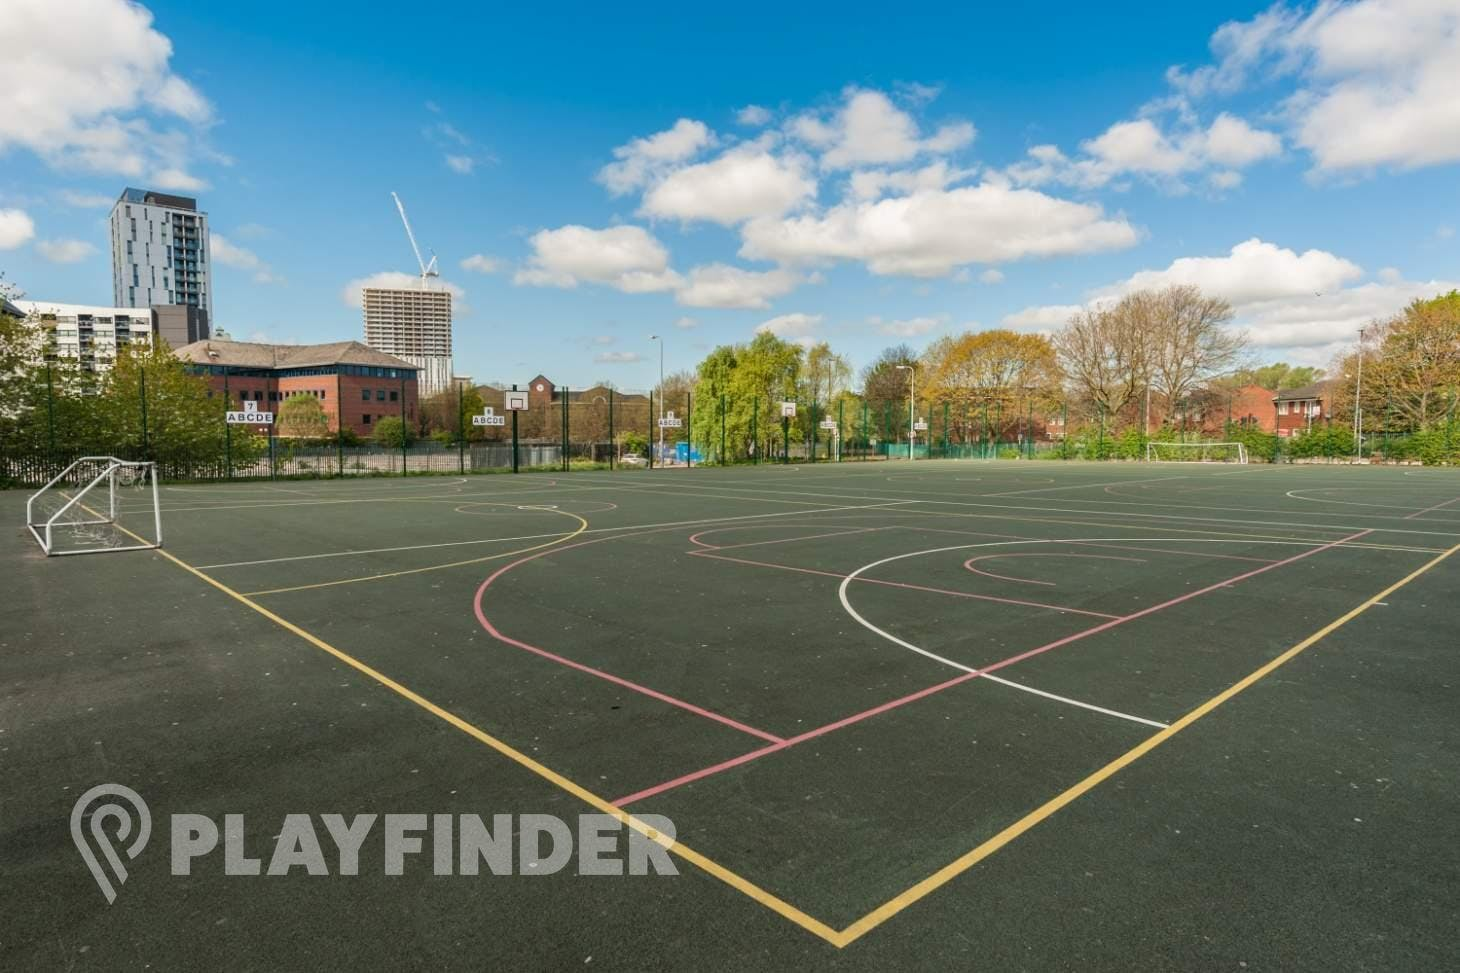 Oasis Academy MediaCityUK Outdoor | Hard (macadam) basketball court